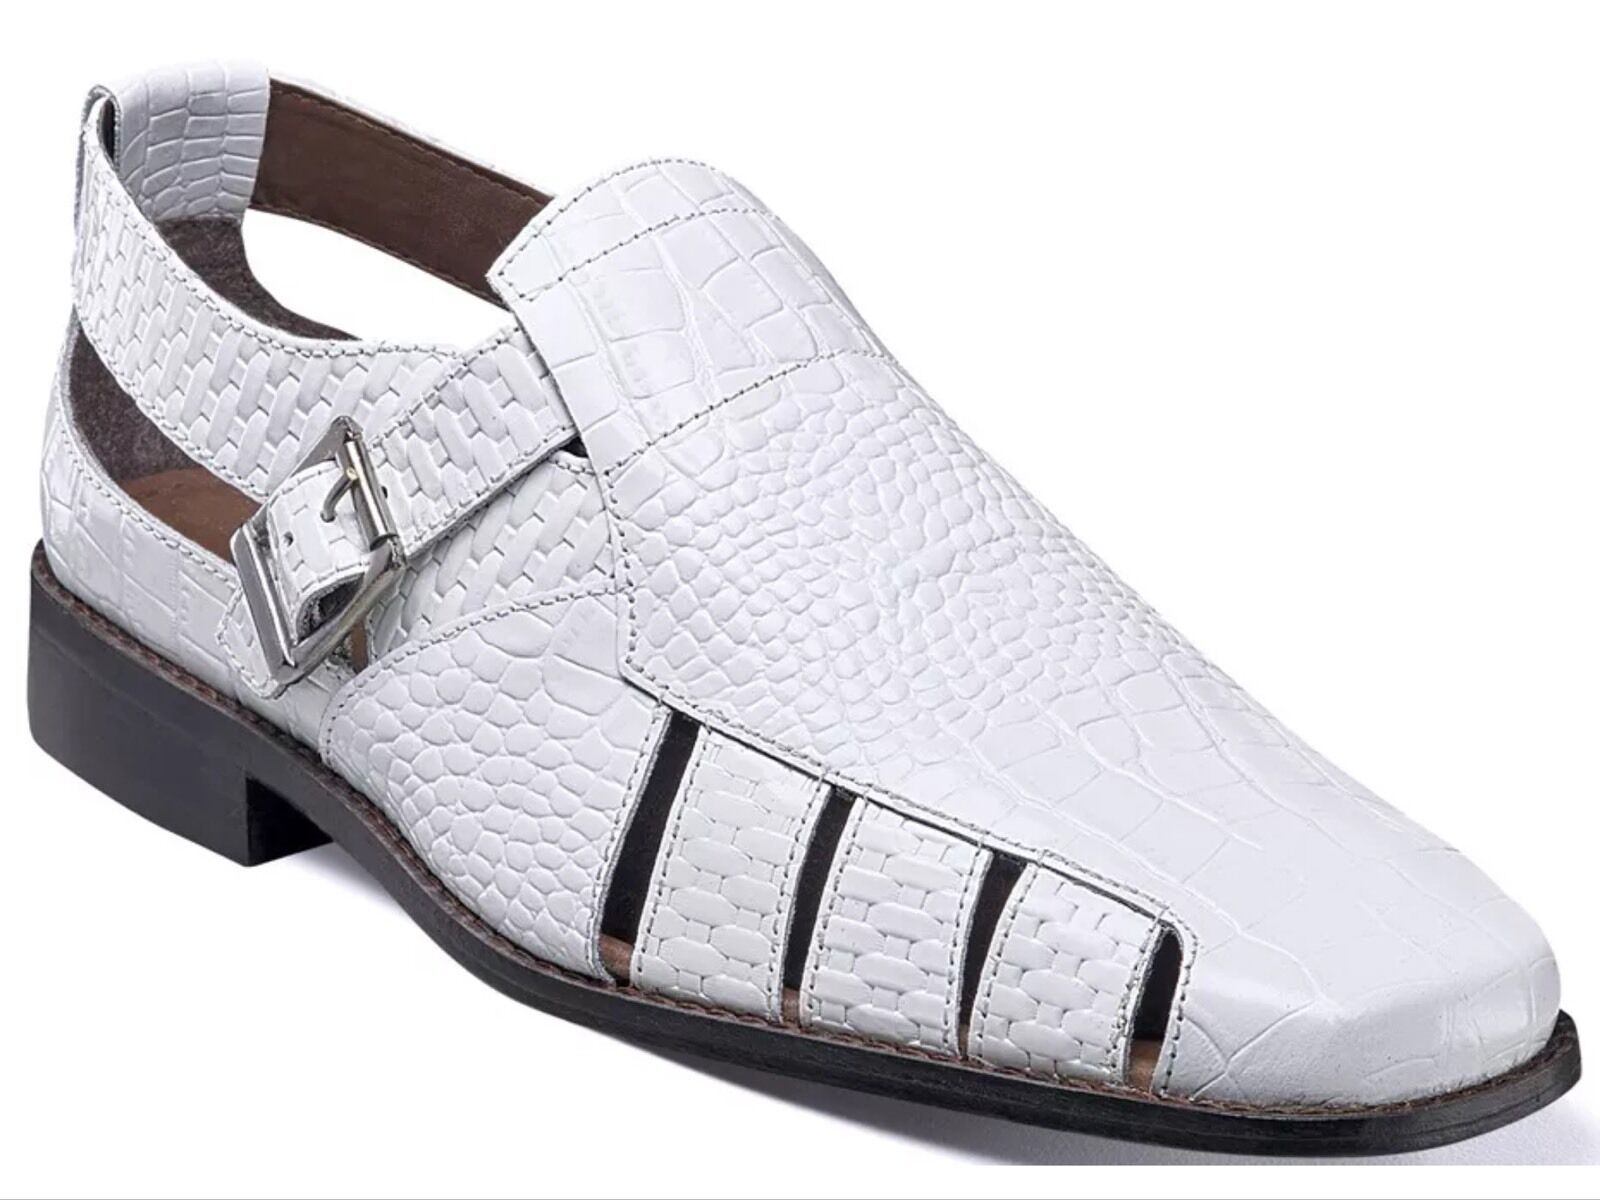 Stacy Adams Men's Sacchi Classic Closed Back Fisherman Sandals White 25035 New